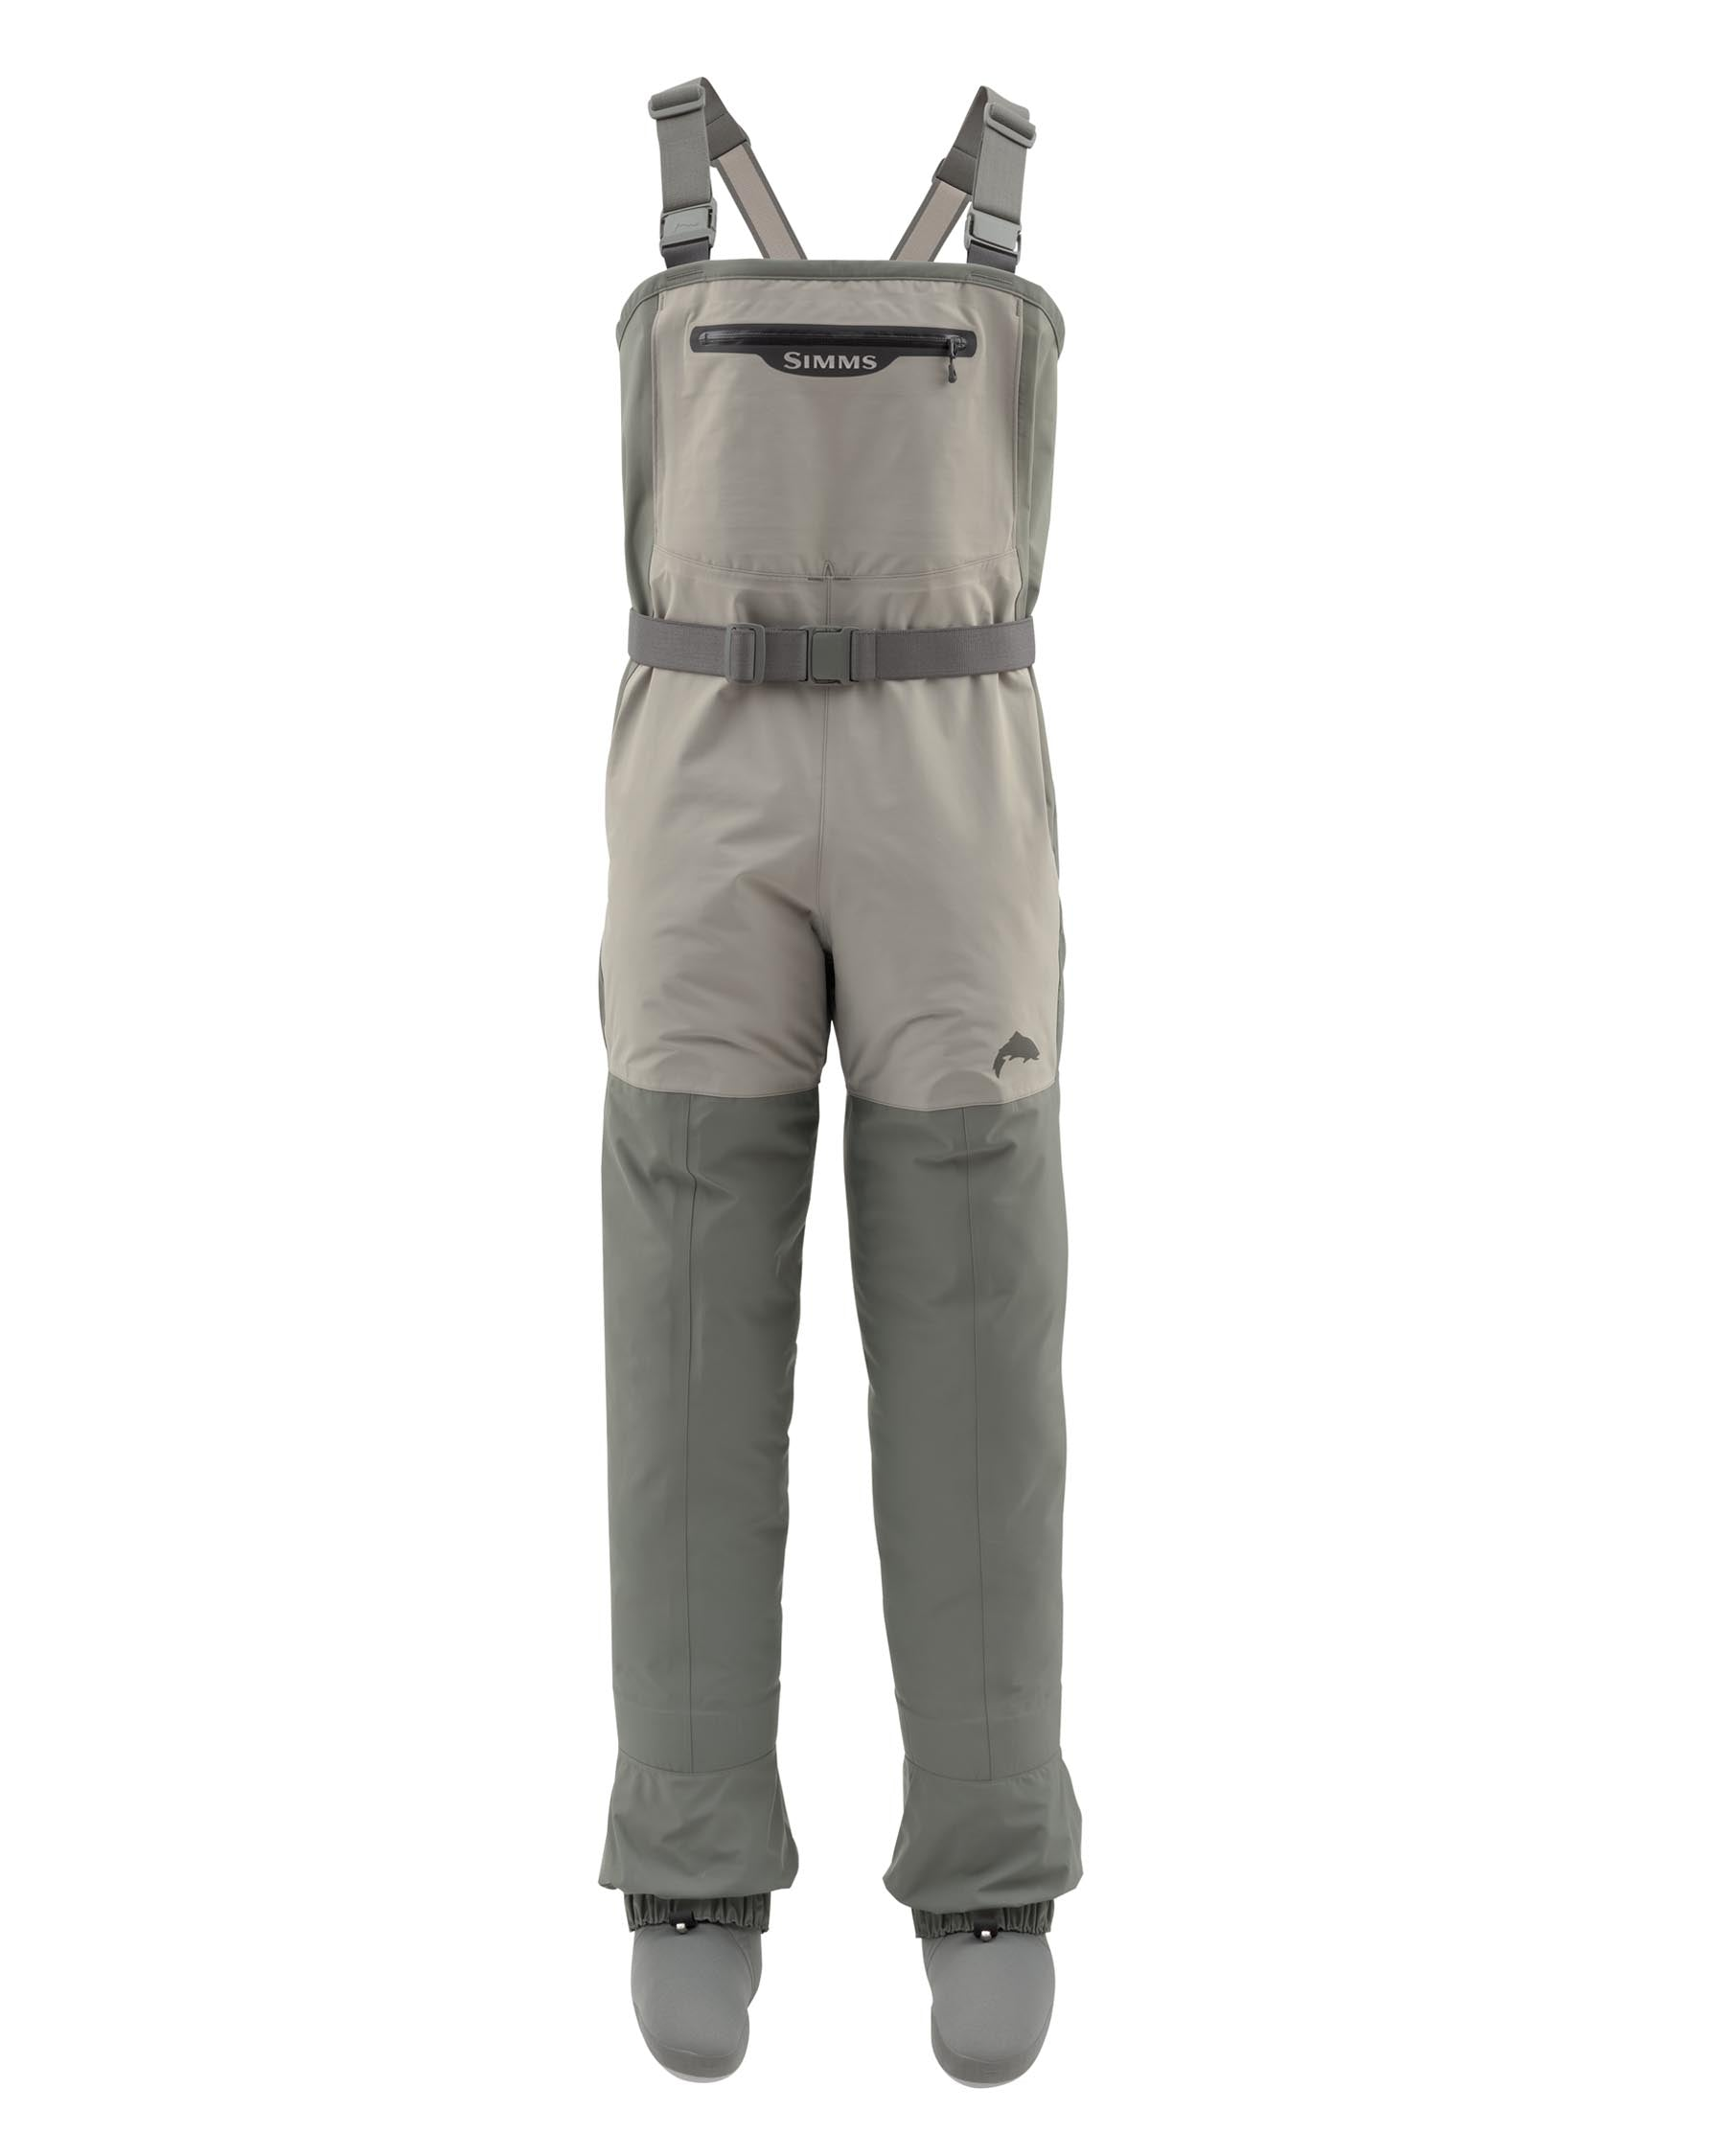 Simms Women's Freestone Stockingfoot Waders Striker Grey